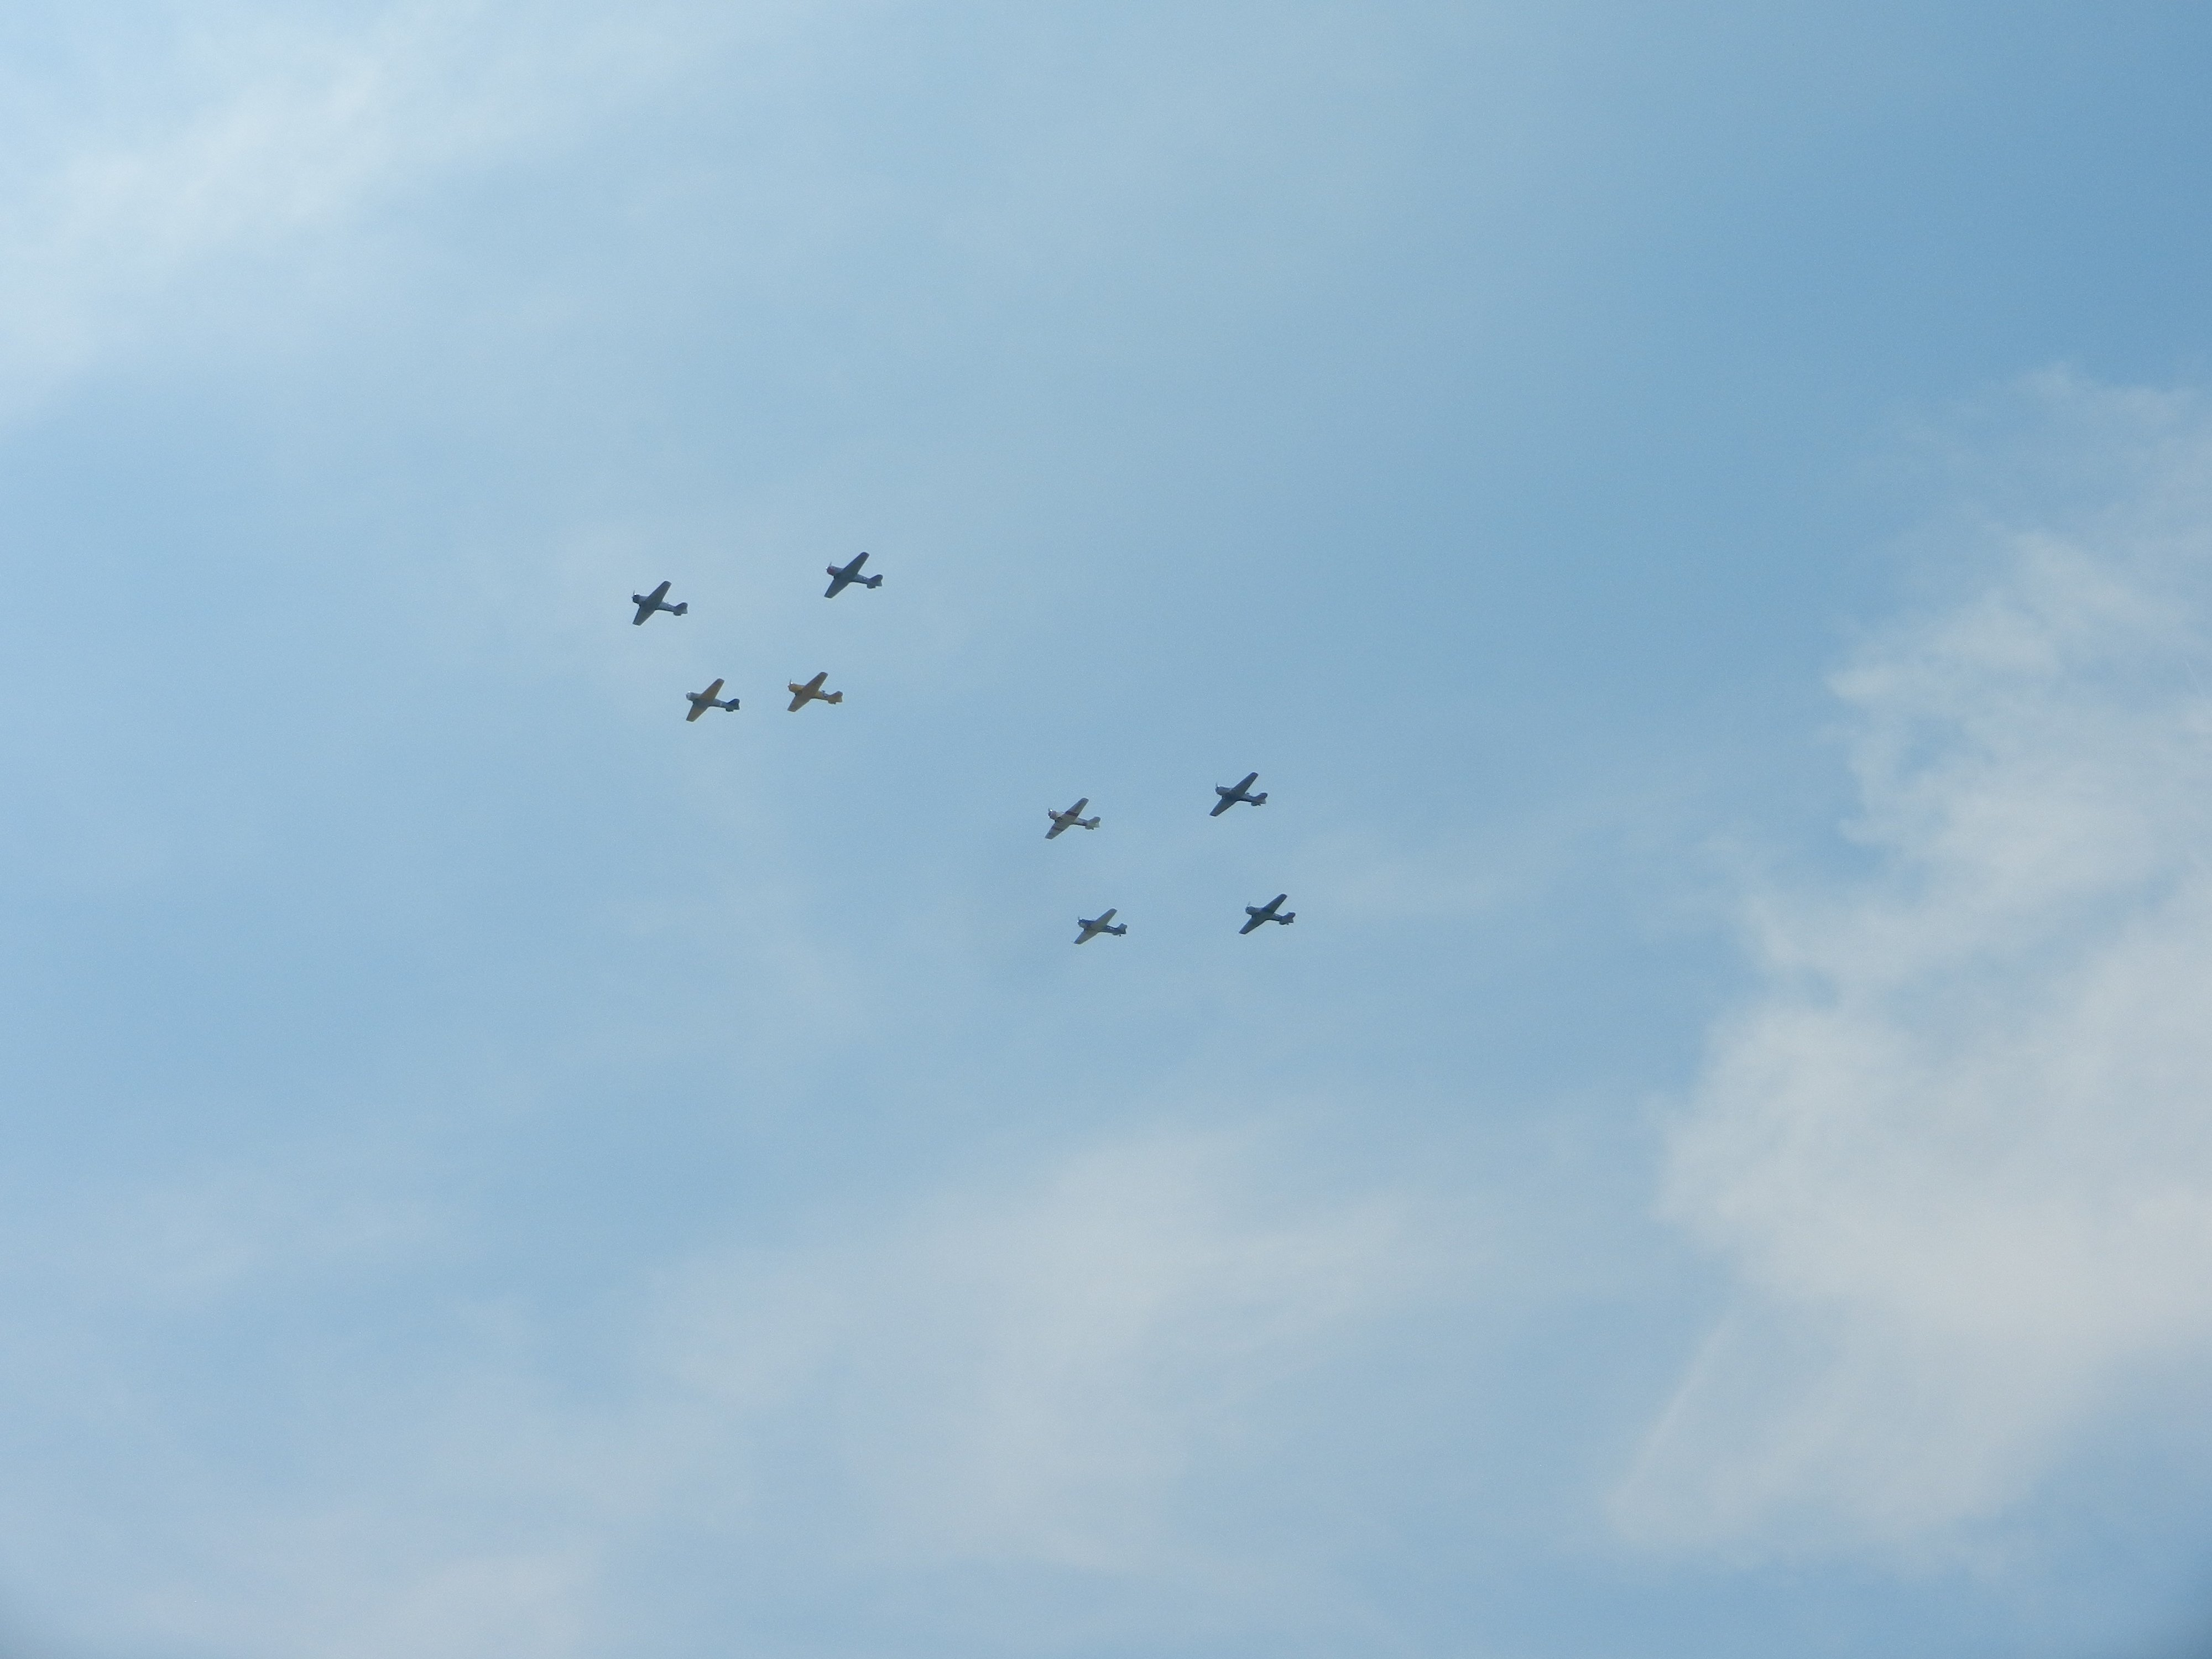 A formation of AT-6/SNJ trainers that taught pilots how to fly and shoot. Photo by Megan Eckstein, USNI News.